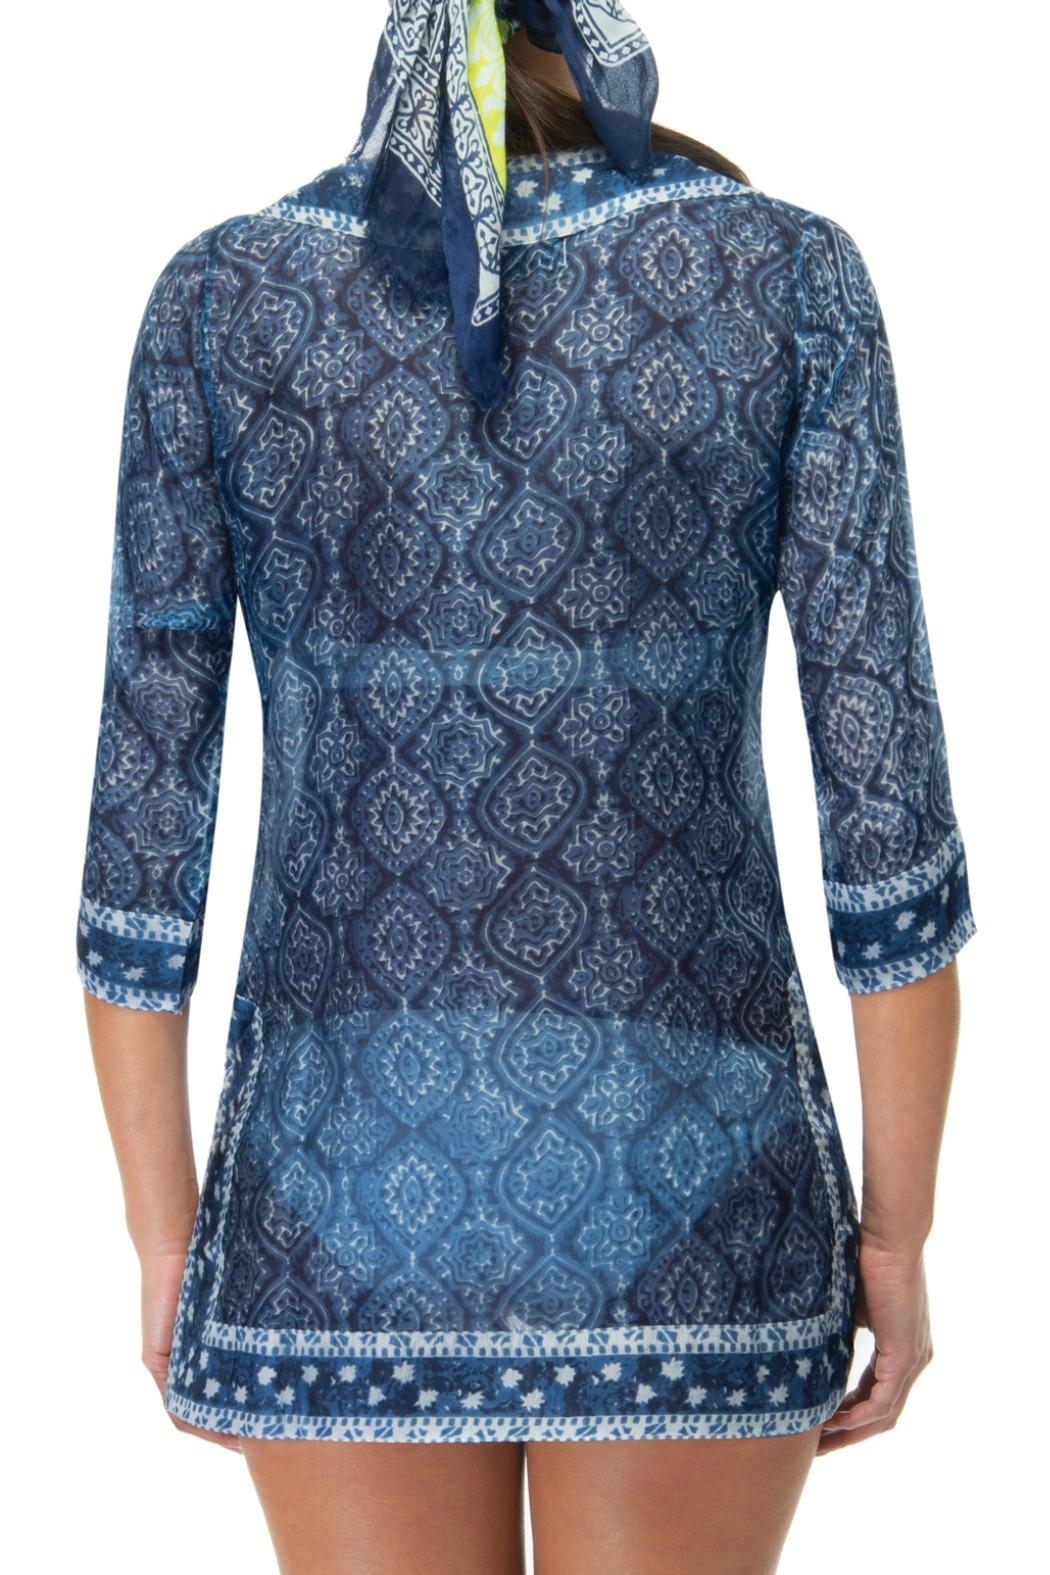 Gretchen Scott Easy Breezy Tunic Dress - Side Cropped Image